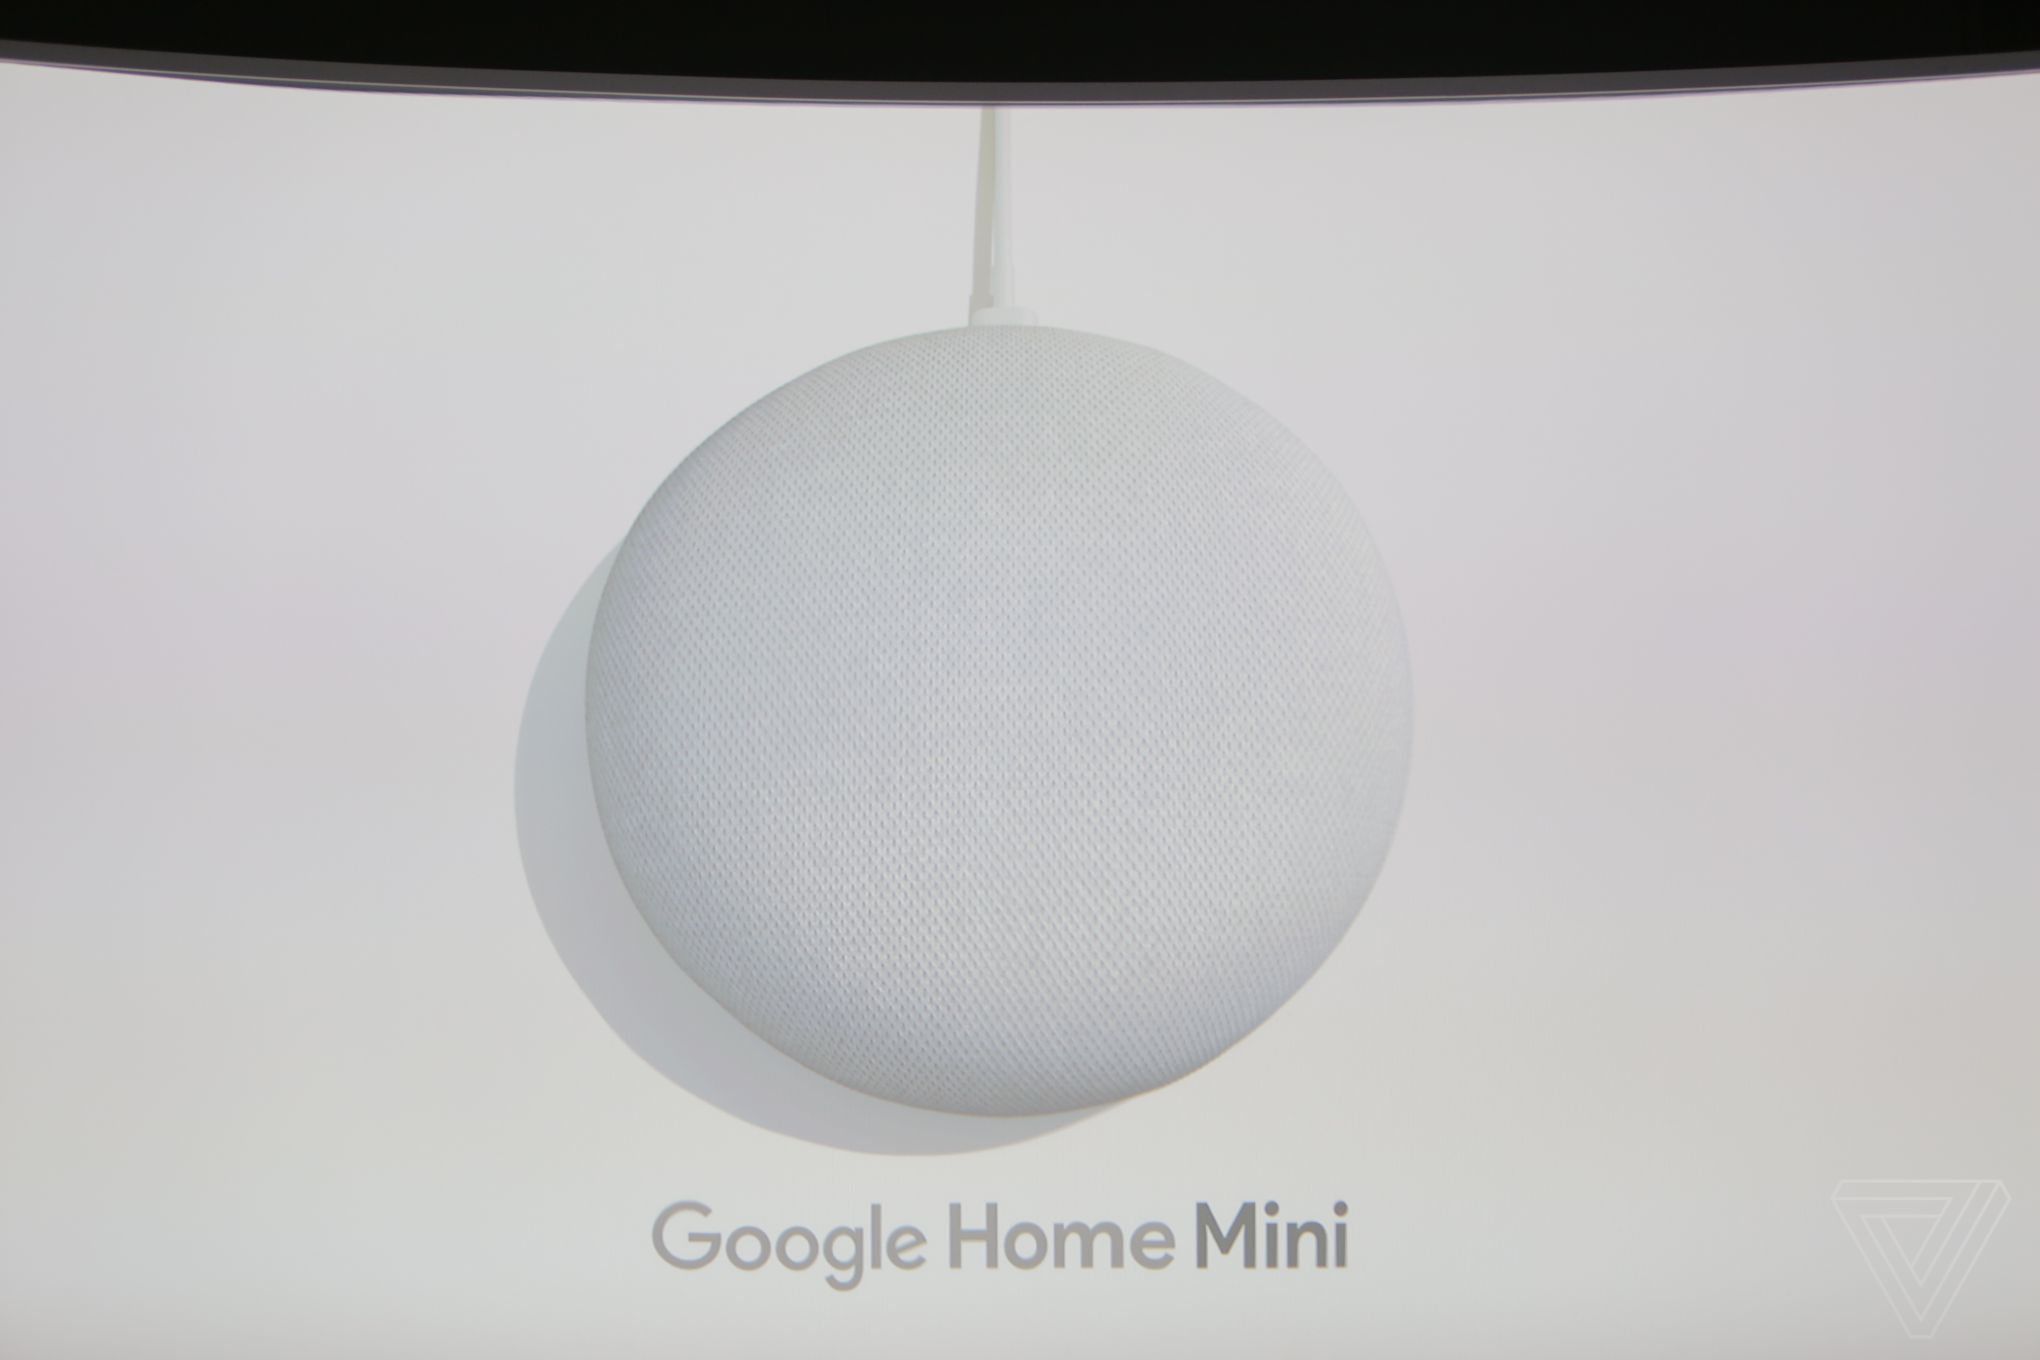 49 google home mini announced to compete with amazon s. Black Bedroom Furniture Sets. Home Design Ideas